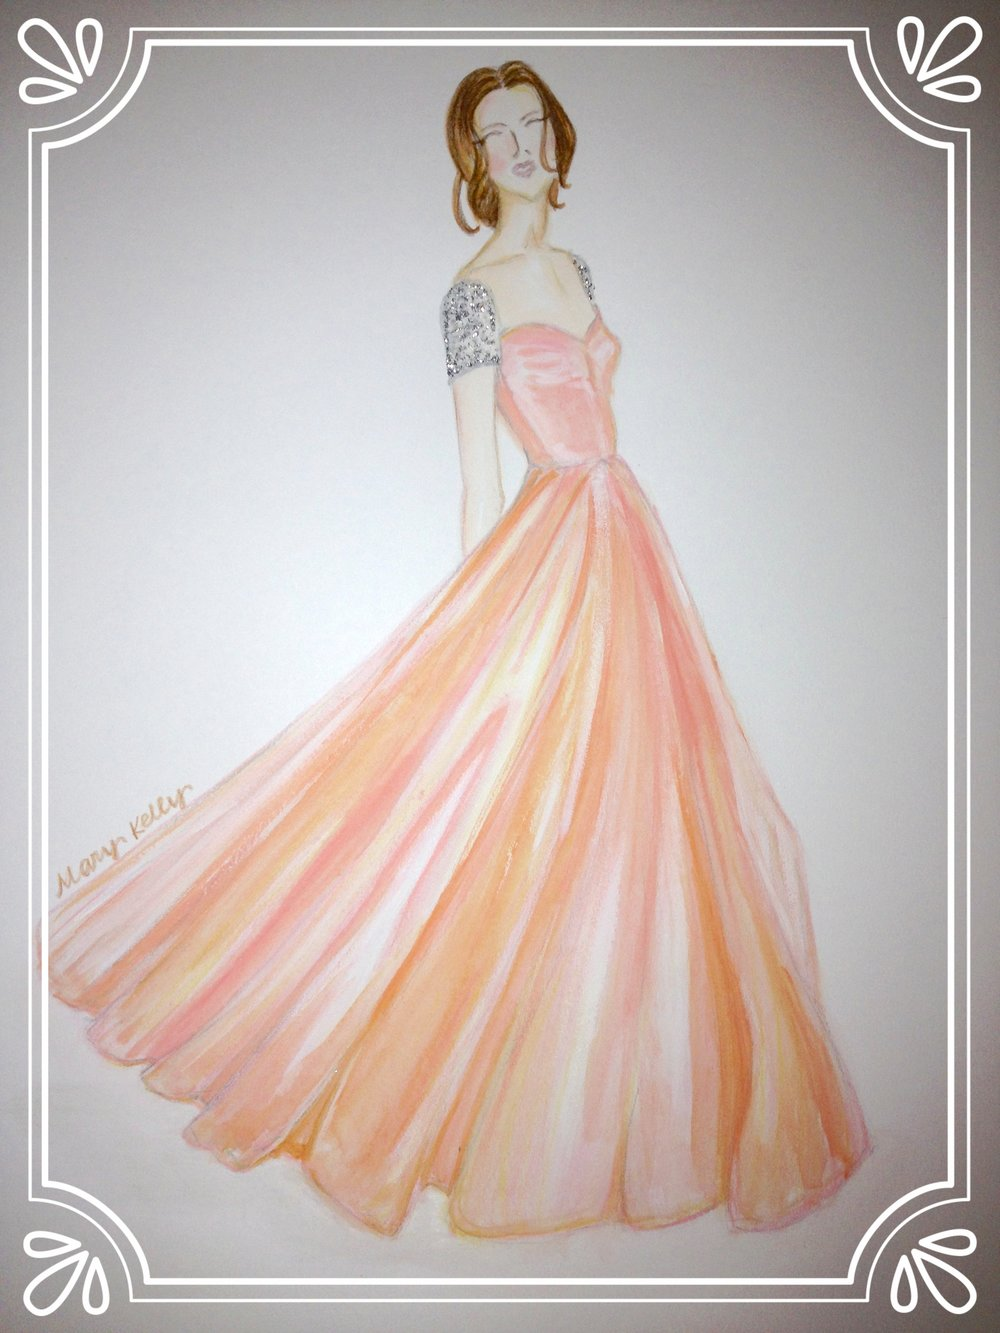 peach gown with bling sleeves